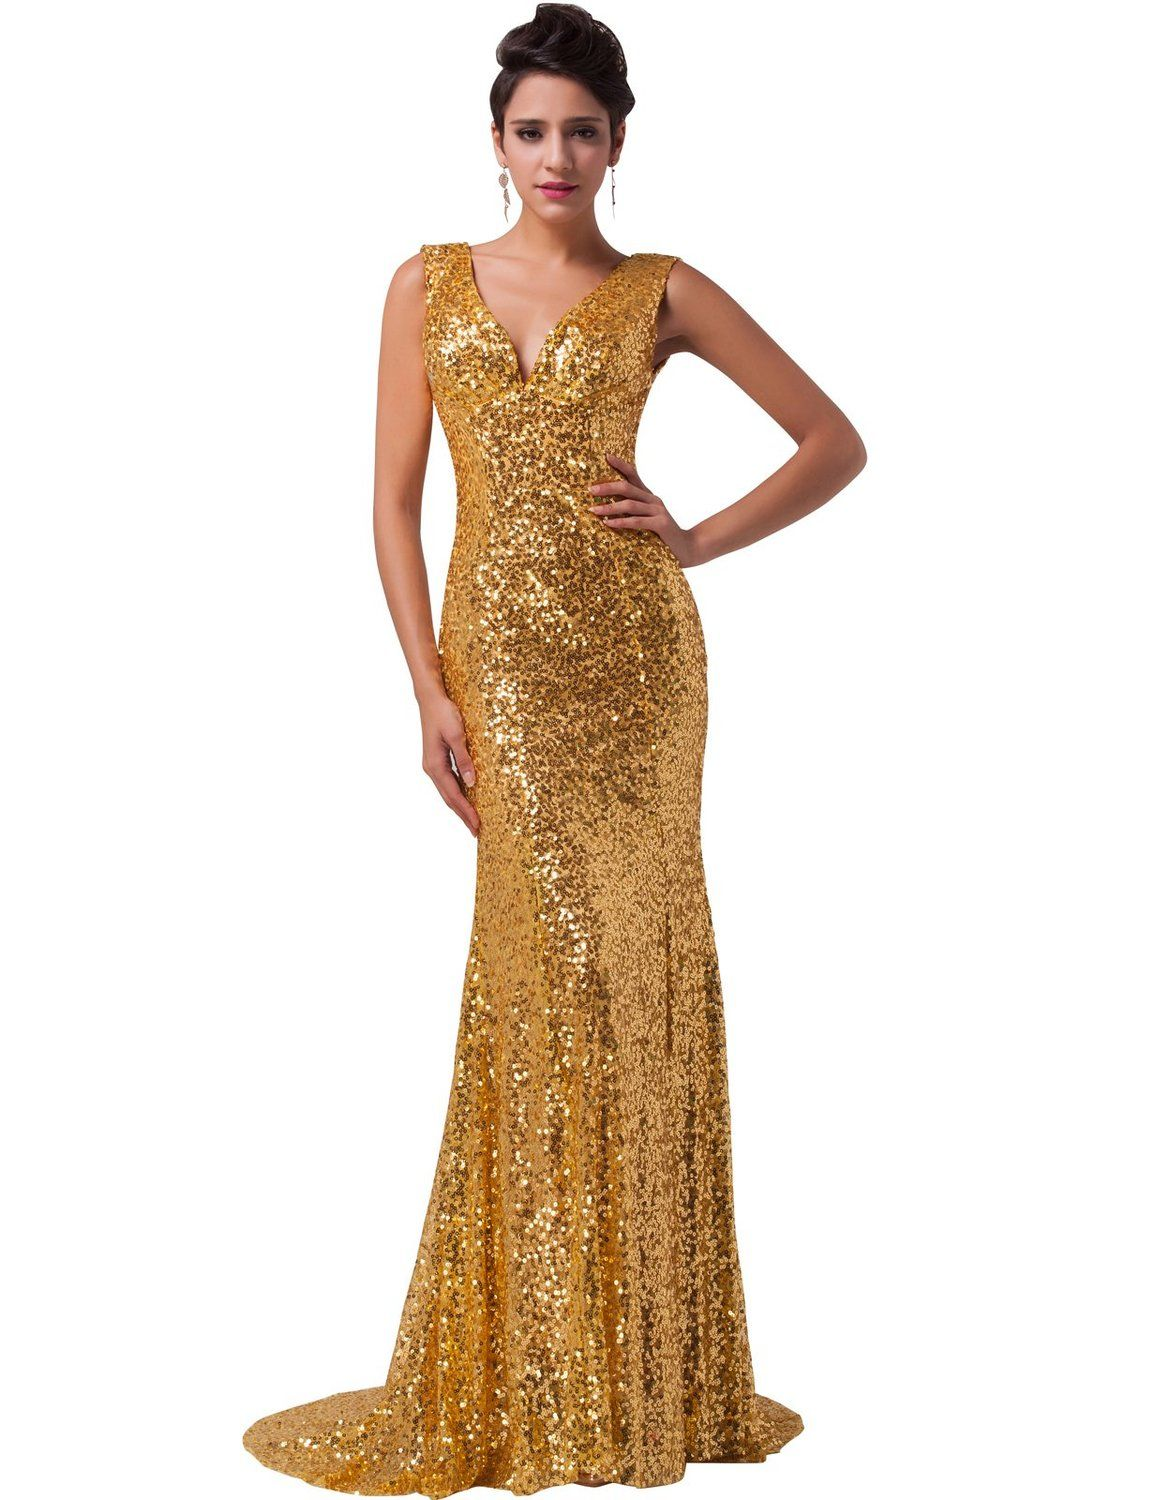 Grace karin womenus vneck sequins floor length evening gown